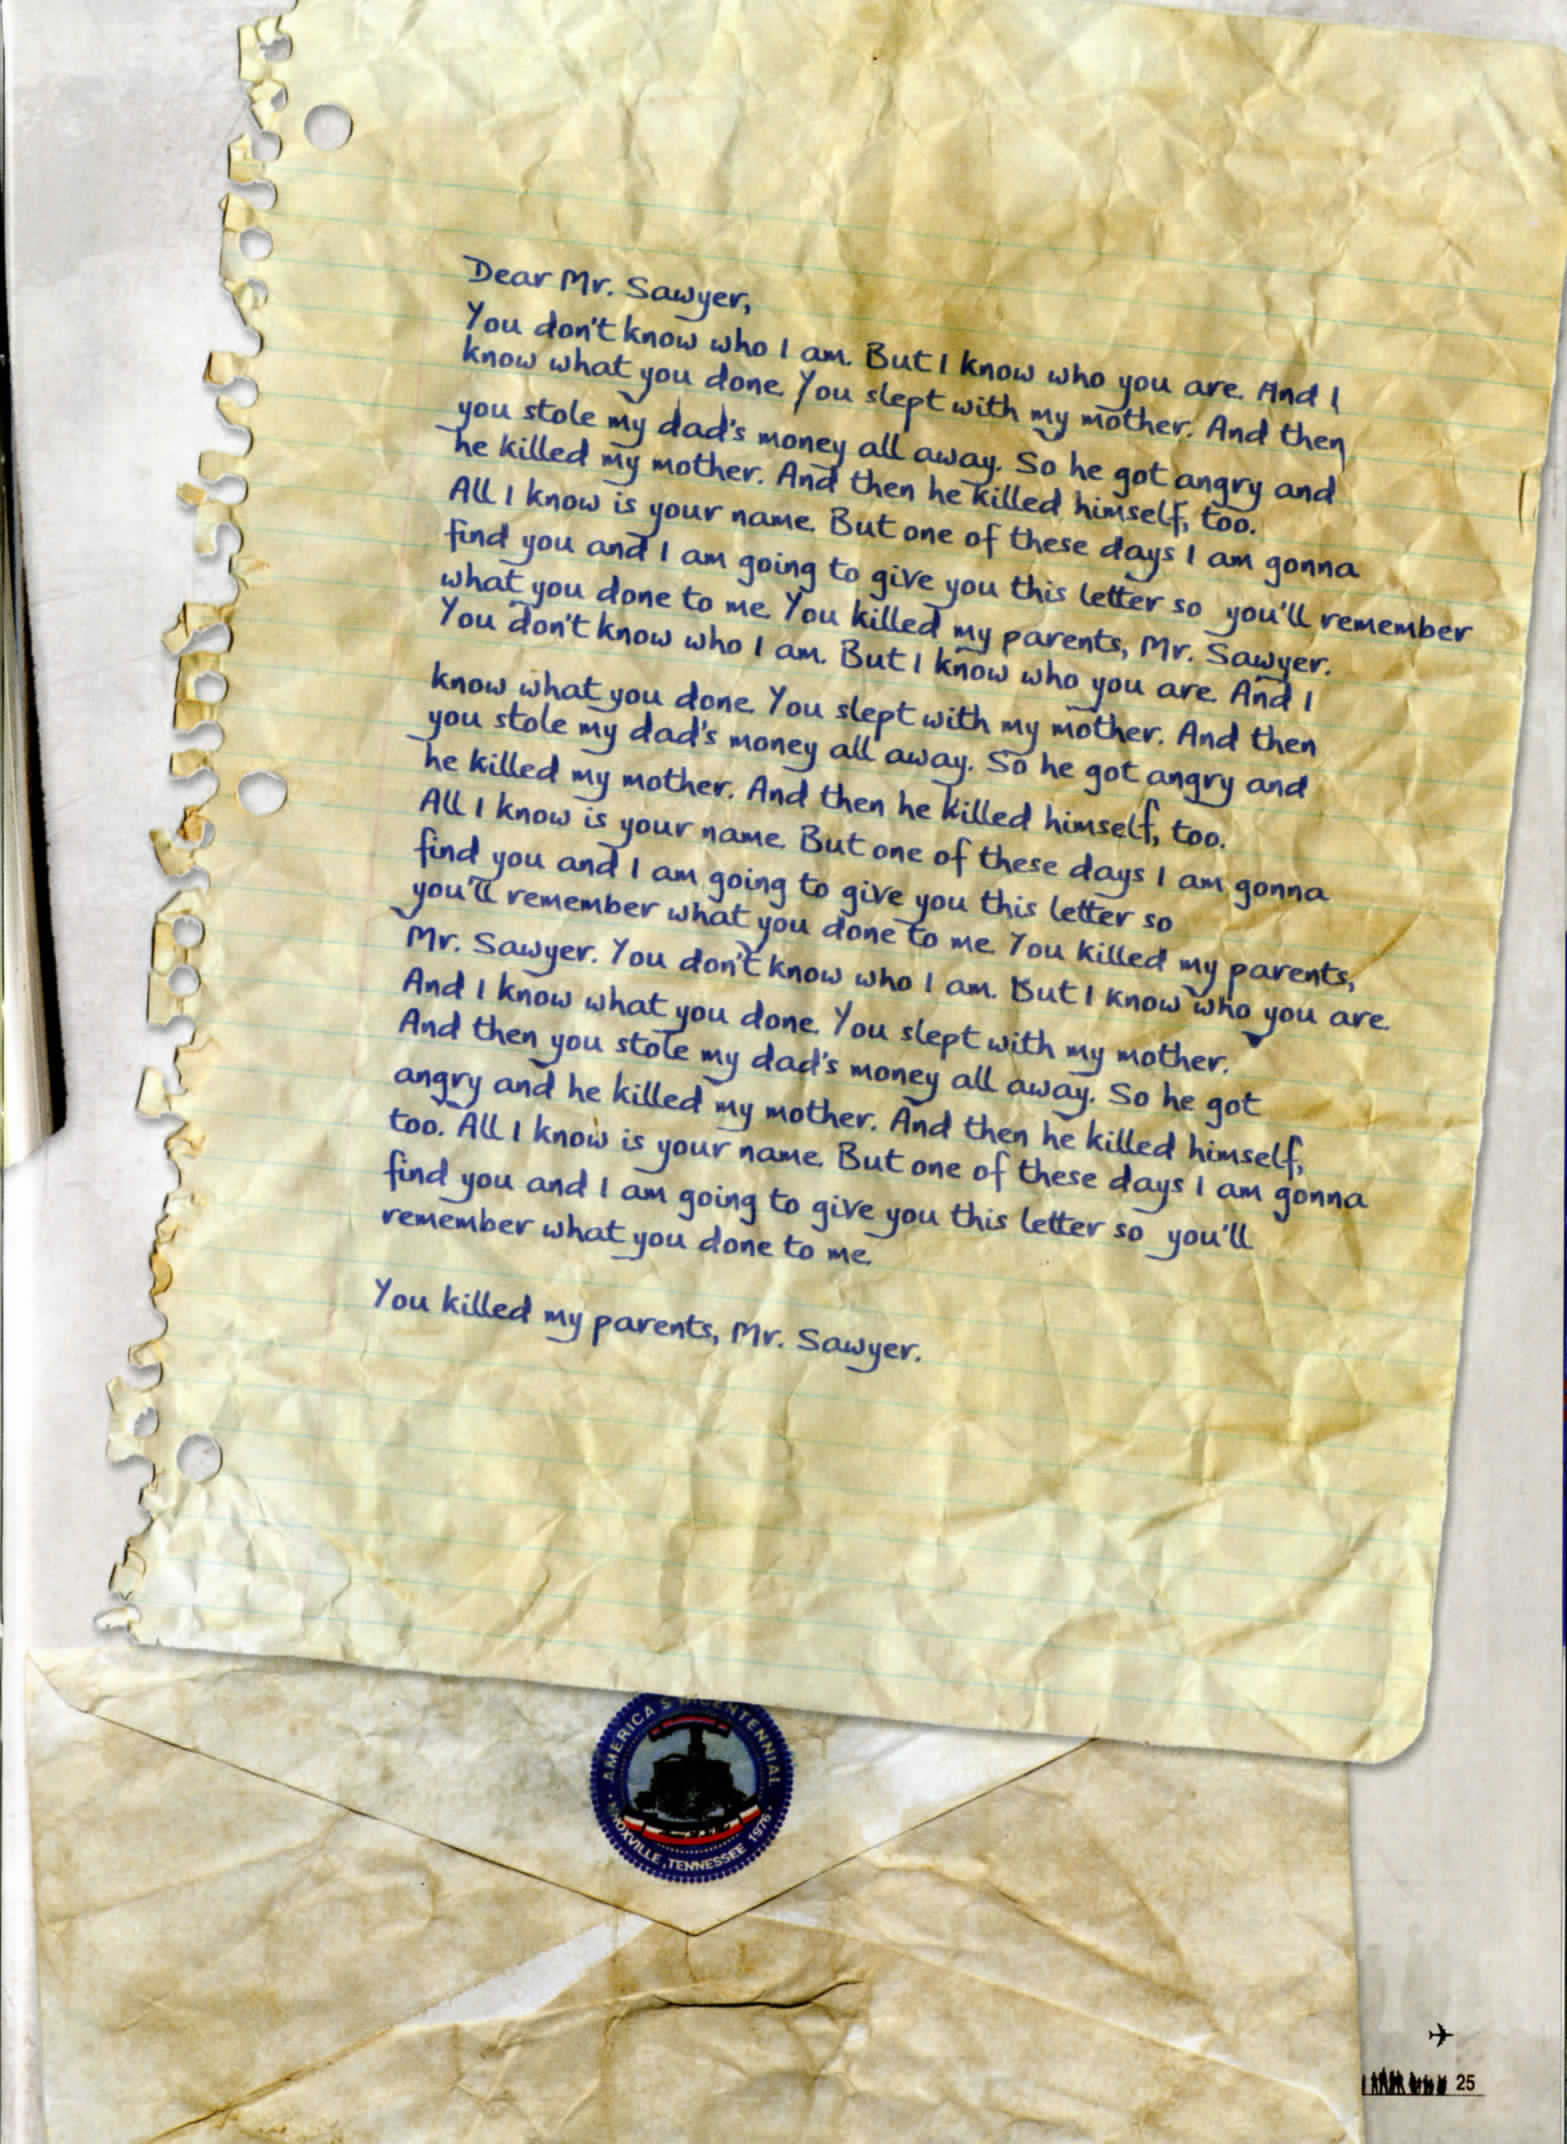 "lost the official magazine, with a picture of letter from lost. ""Dear Mr Sawyer, you don't know who i am. But I know who you are..."""